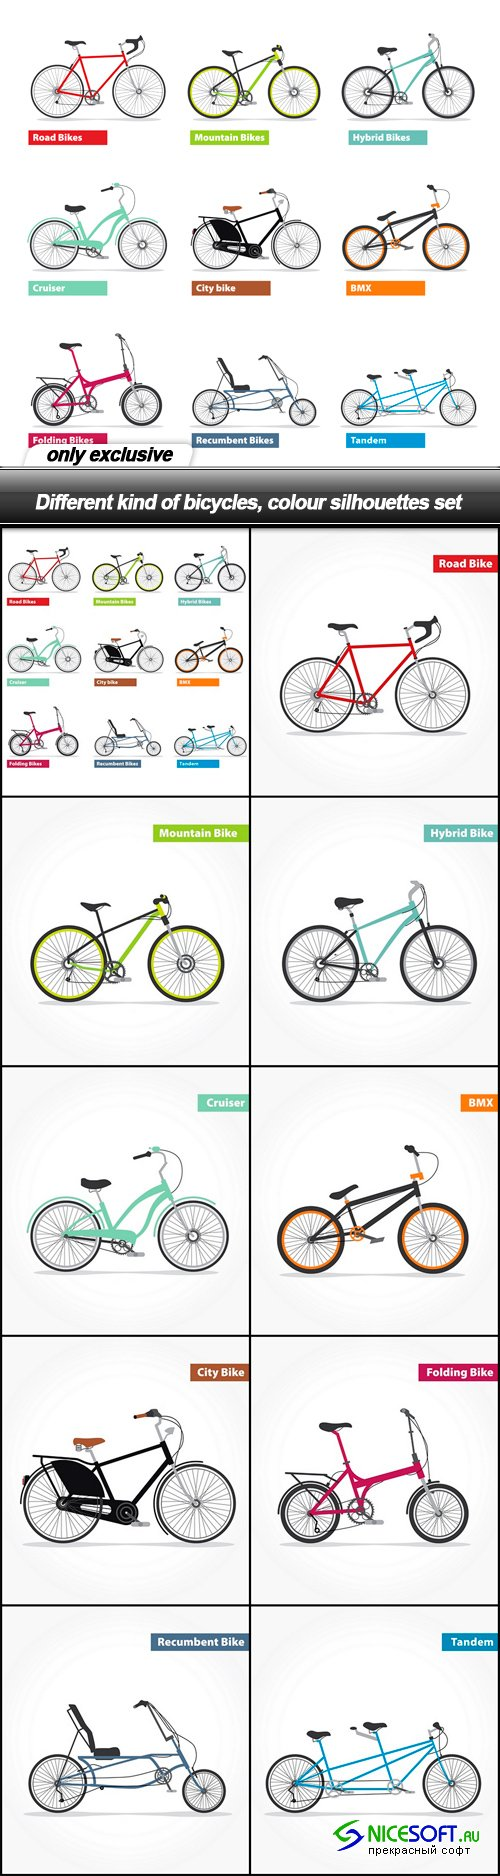 Different kind of bicycles, colour silhouettes set